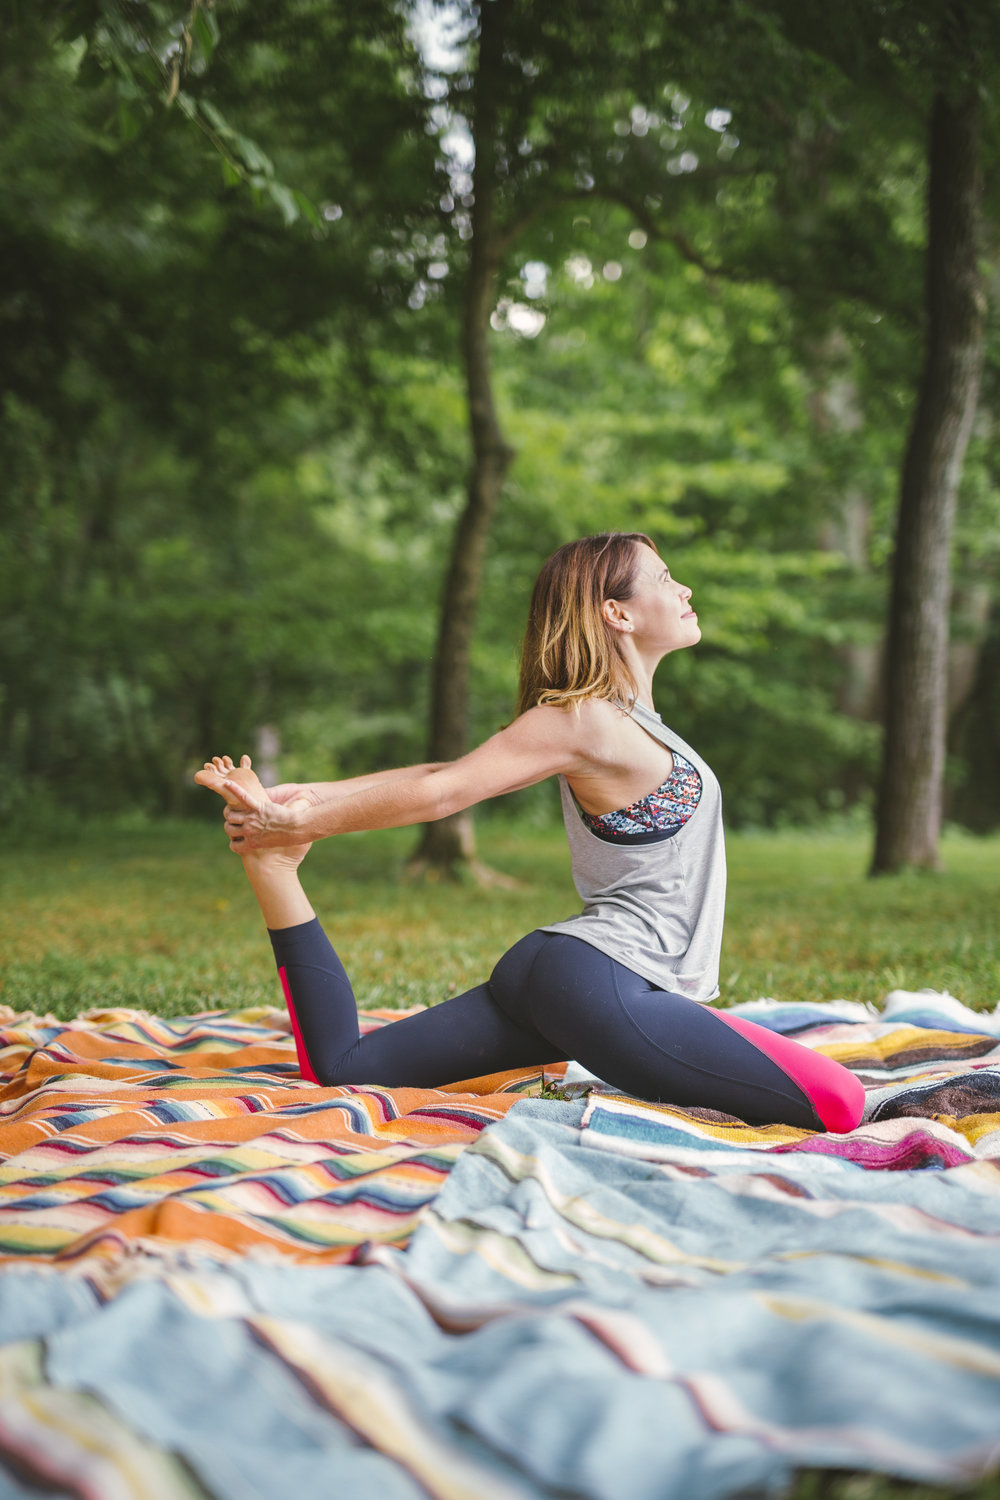 Prana Vinyasa Yoga Teacher Training Raleigh, NC Durham, NC Chapel Hill, NC Carborro, NC